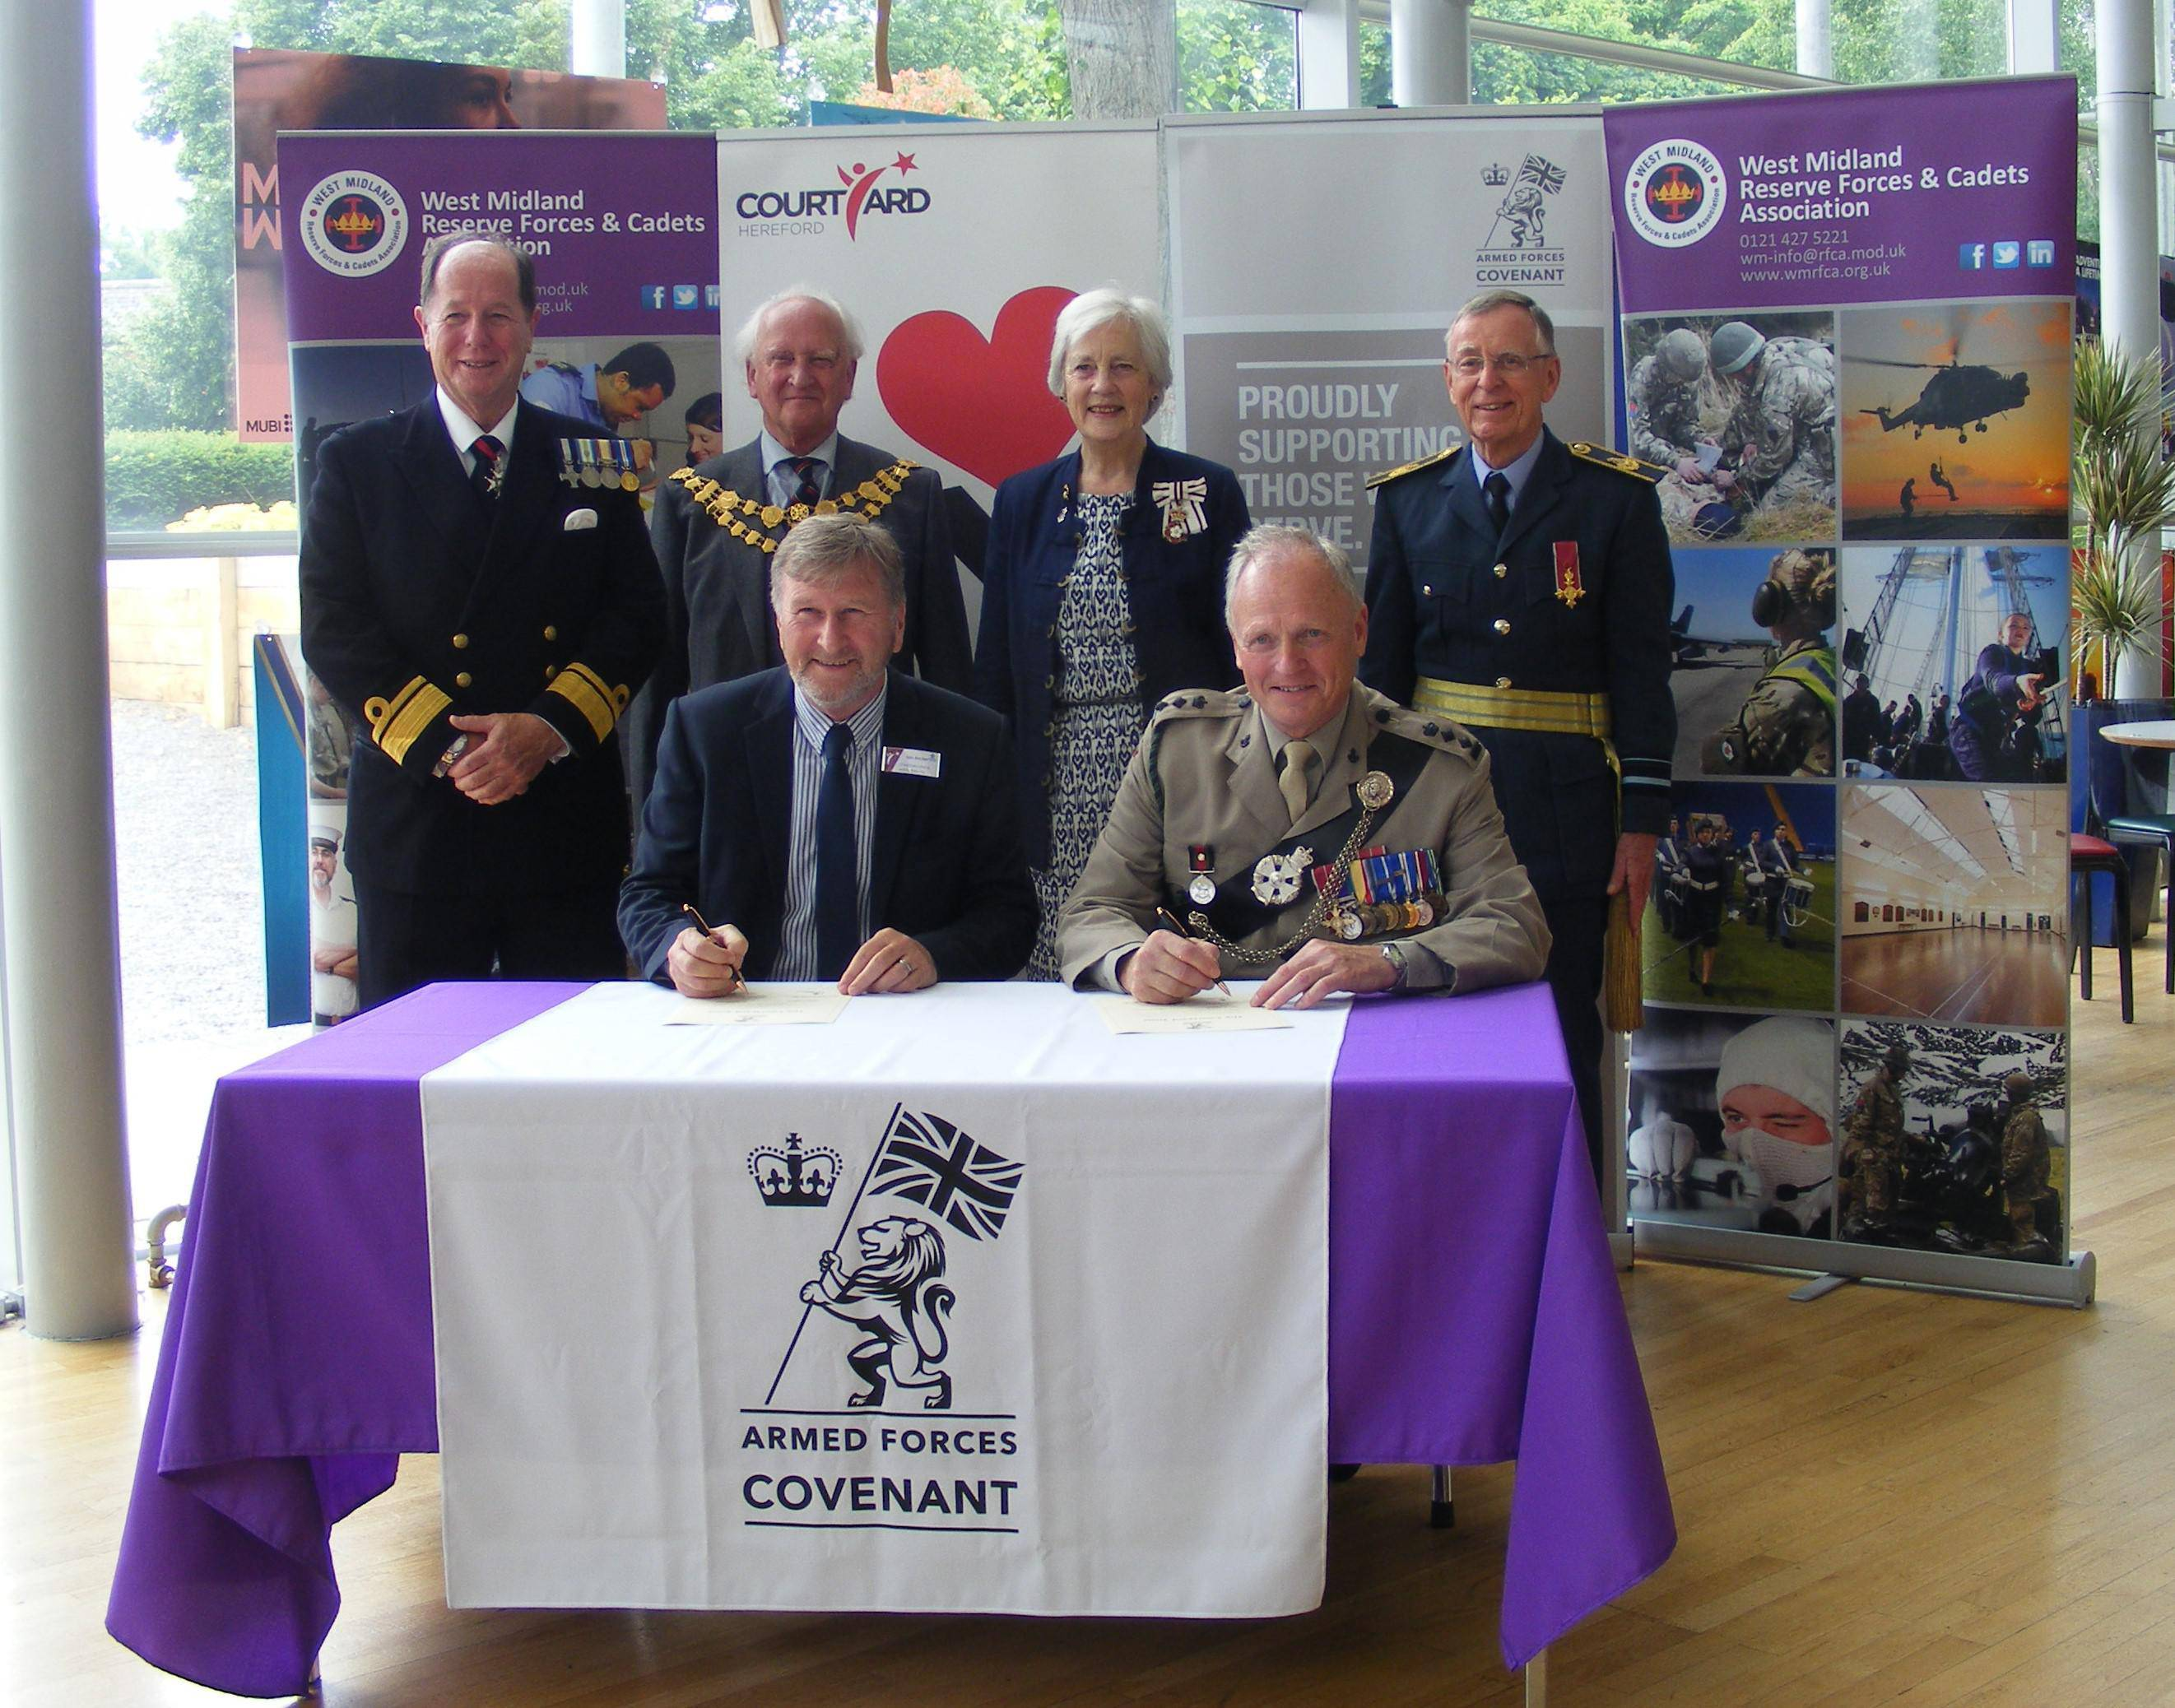 The Courtyard in Hereford became the 46th Herefordshire organisation to sign the Armed Forces covenant